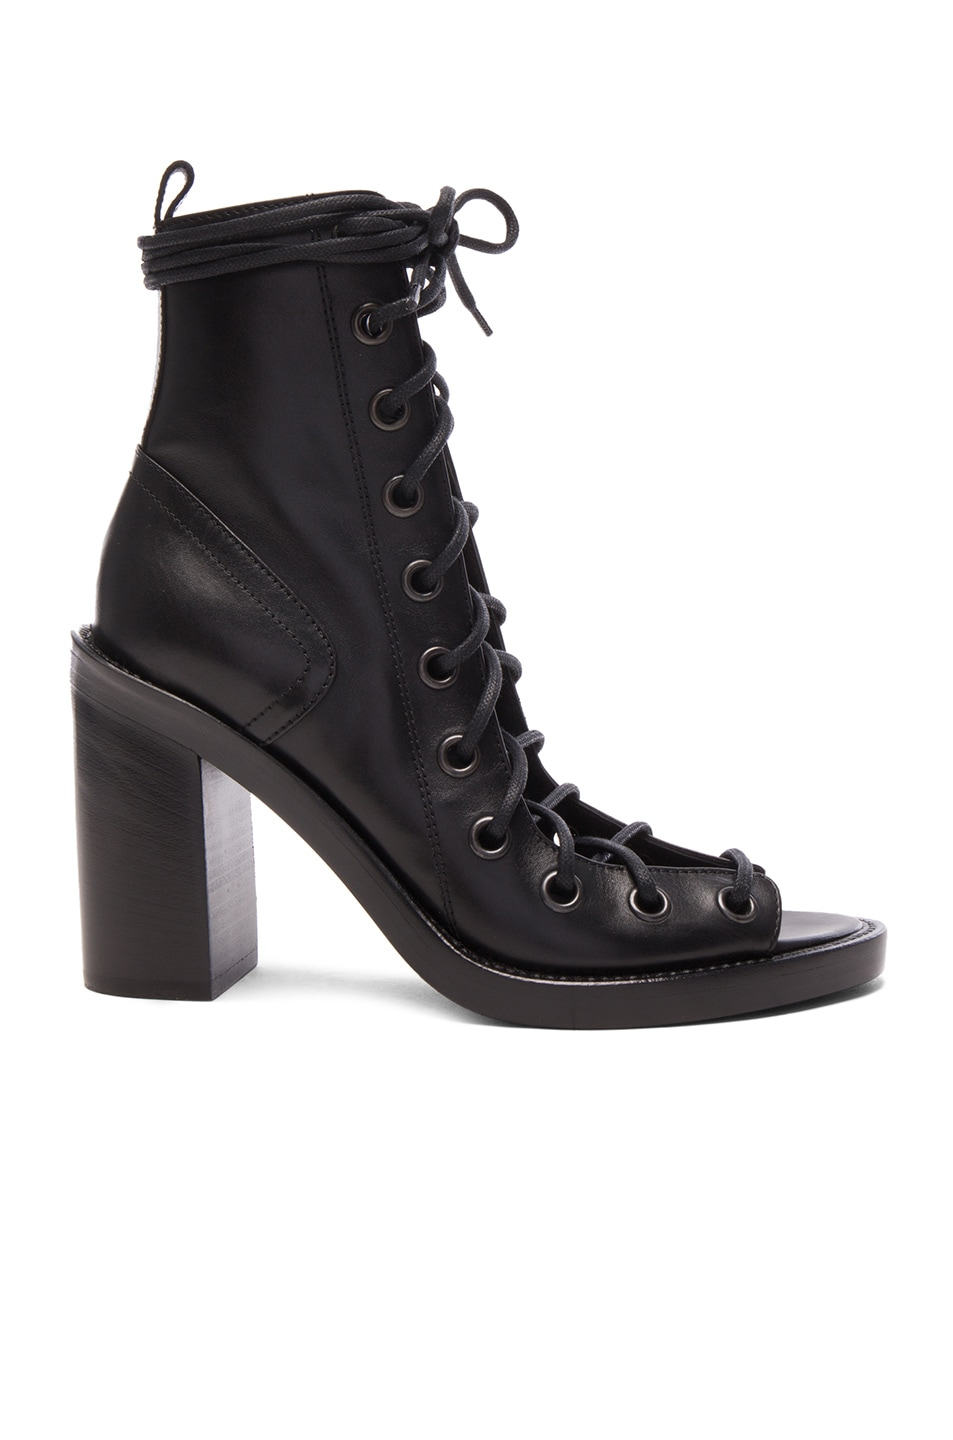 Image 1 of Ann Demeulemeester Lace Up Heels in Black